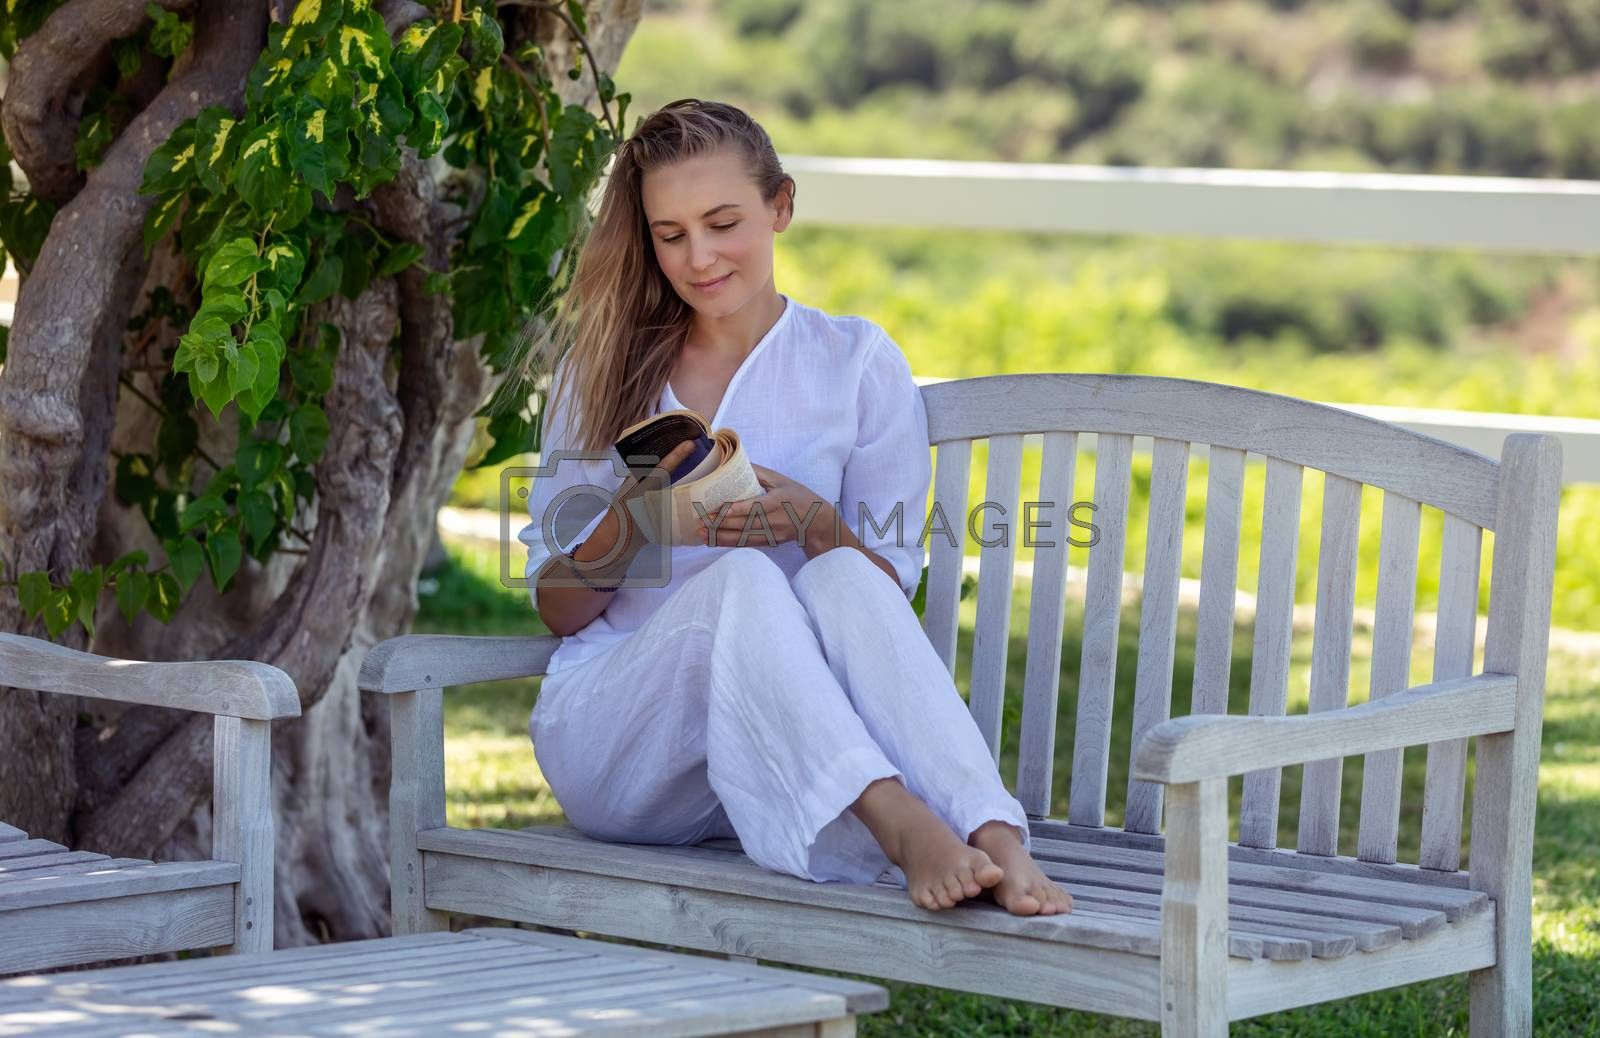 Beautiful Young Woman Sits on the Bench in the Park and Reading a Book. Spending Nice Summer Day with Good Novel in Nature. Peace and Relaxation Concept.